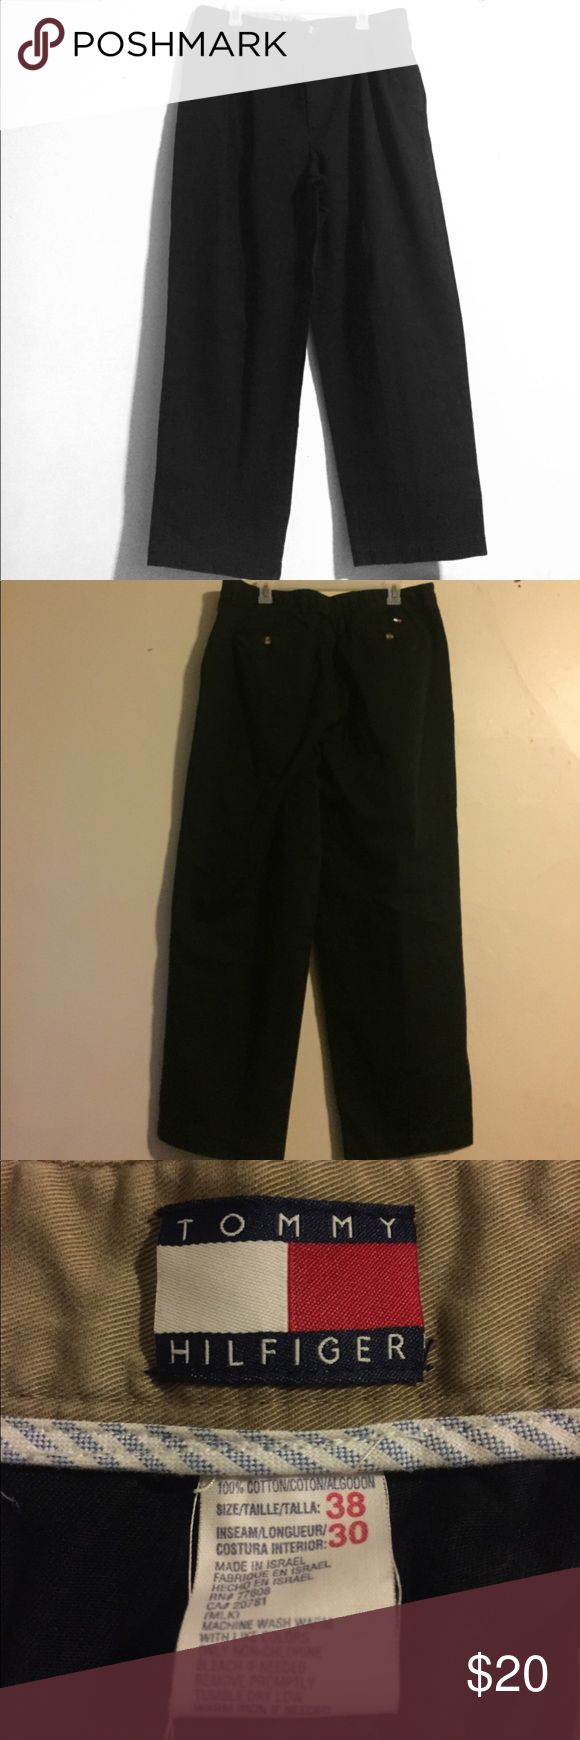 Men's Tommy Hilfiger black slacks. Size 28. Jvc320 MEASUREMENTS IN INCHES: waist:36 inseam:29 outseam:41.5 hips:45 thigh:29 waist to crotch:13 leg opening:18 Zipper & Length:7.5 Pockets: 4 Buttons:3 Tommy Hilfiger Pants Dress